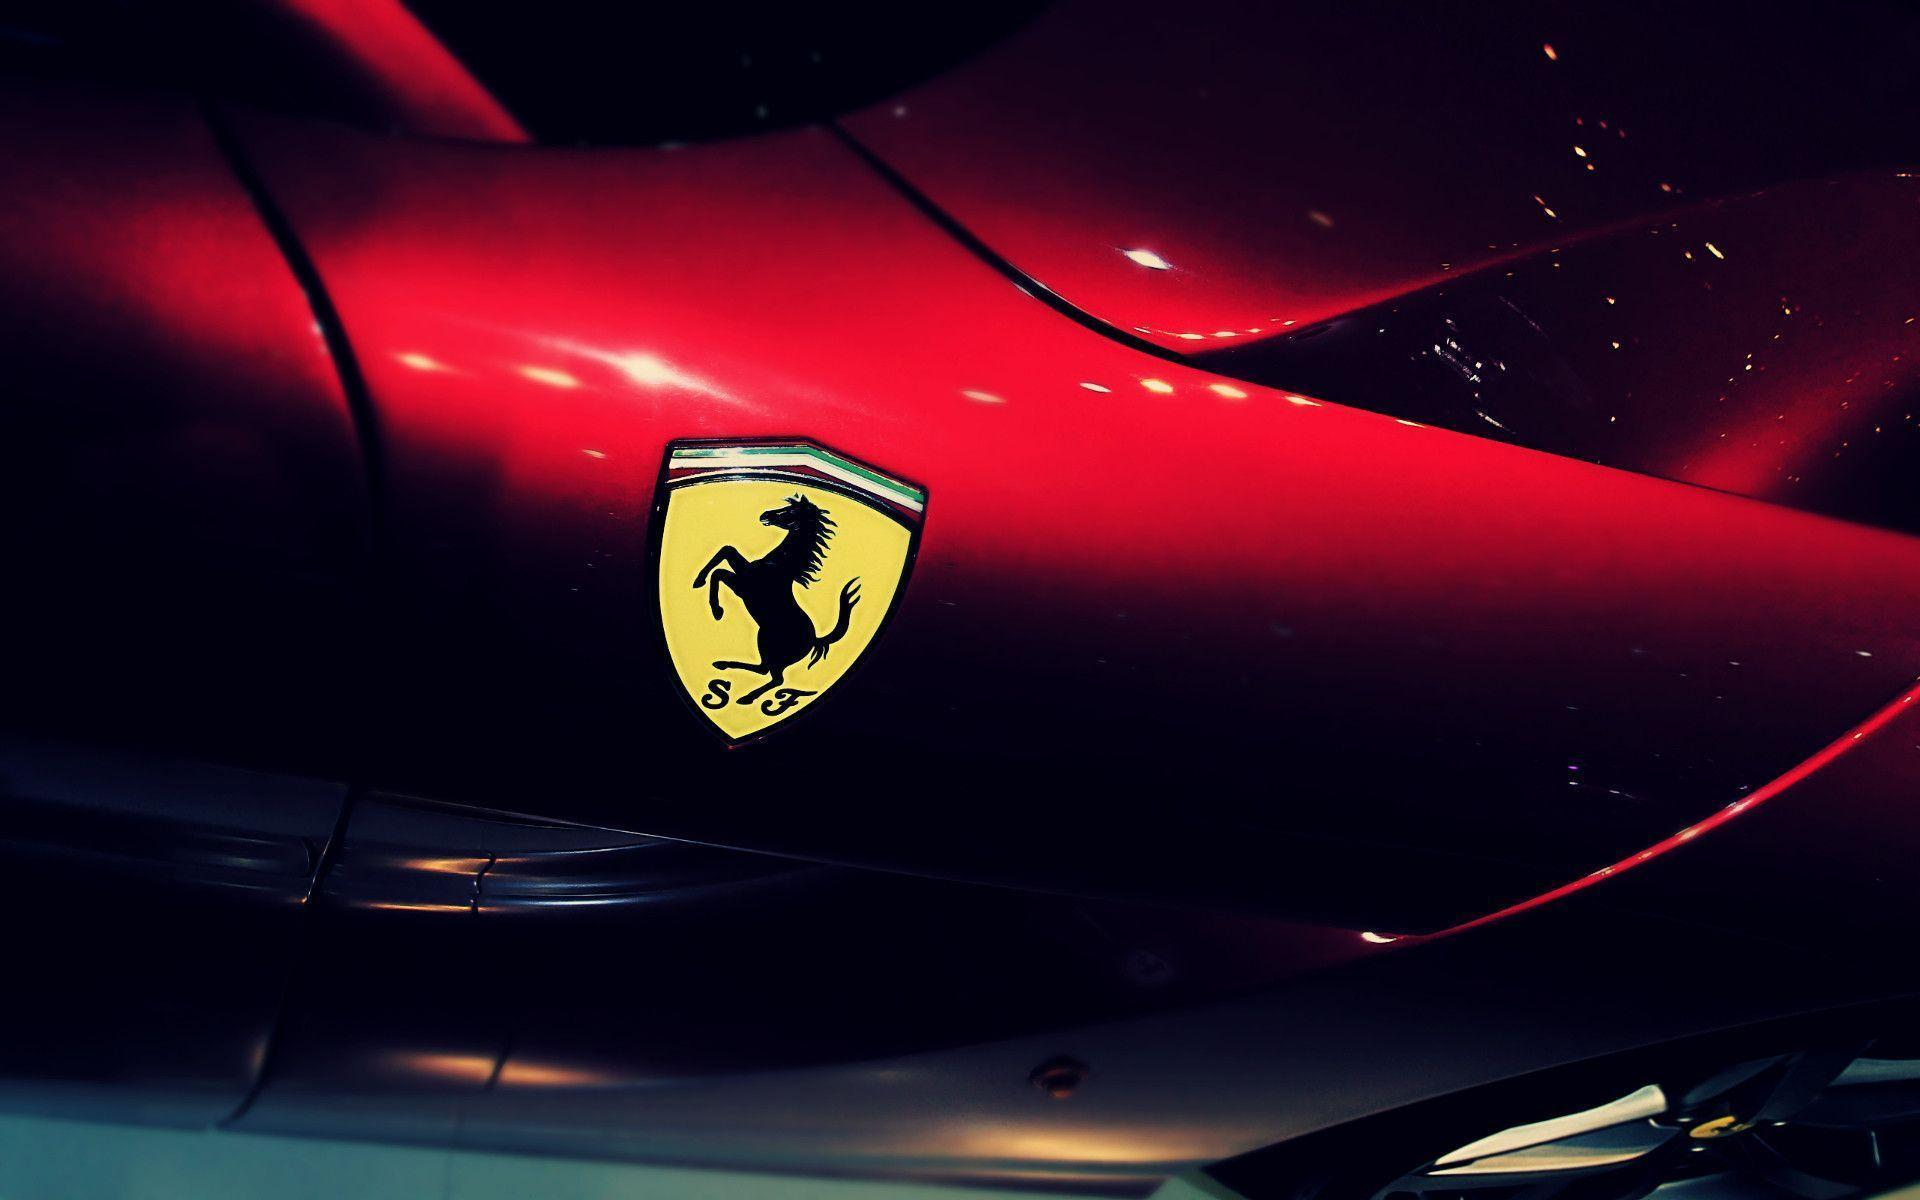 Ferrari Wallpapers Wallpaper Cave